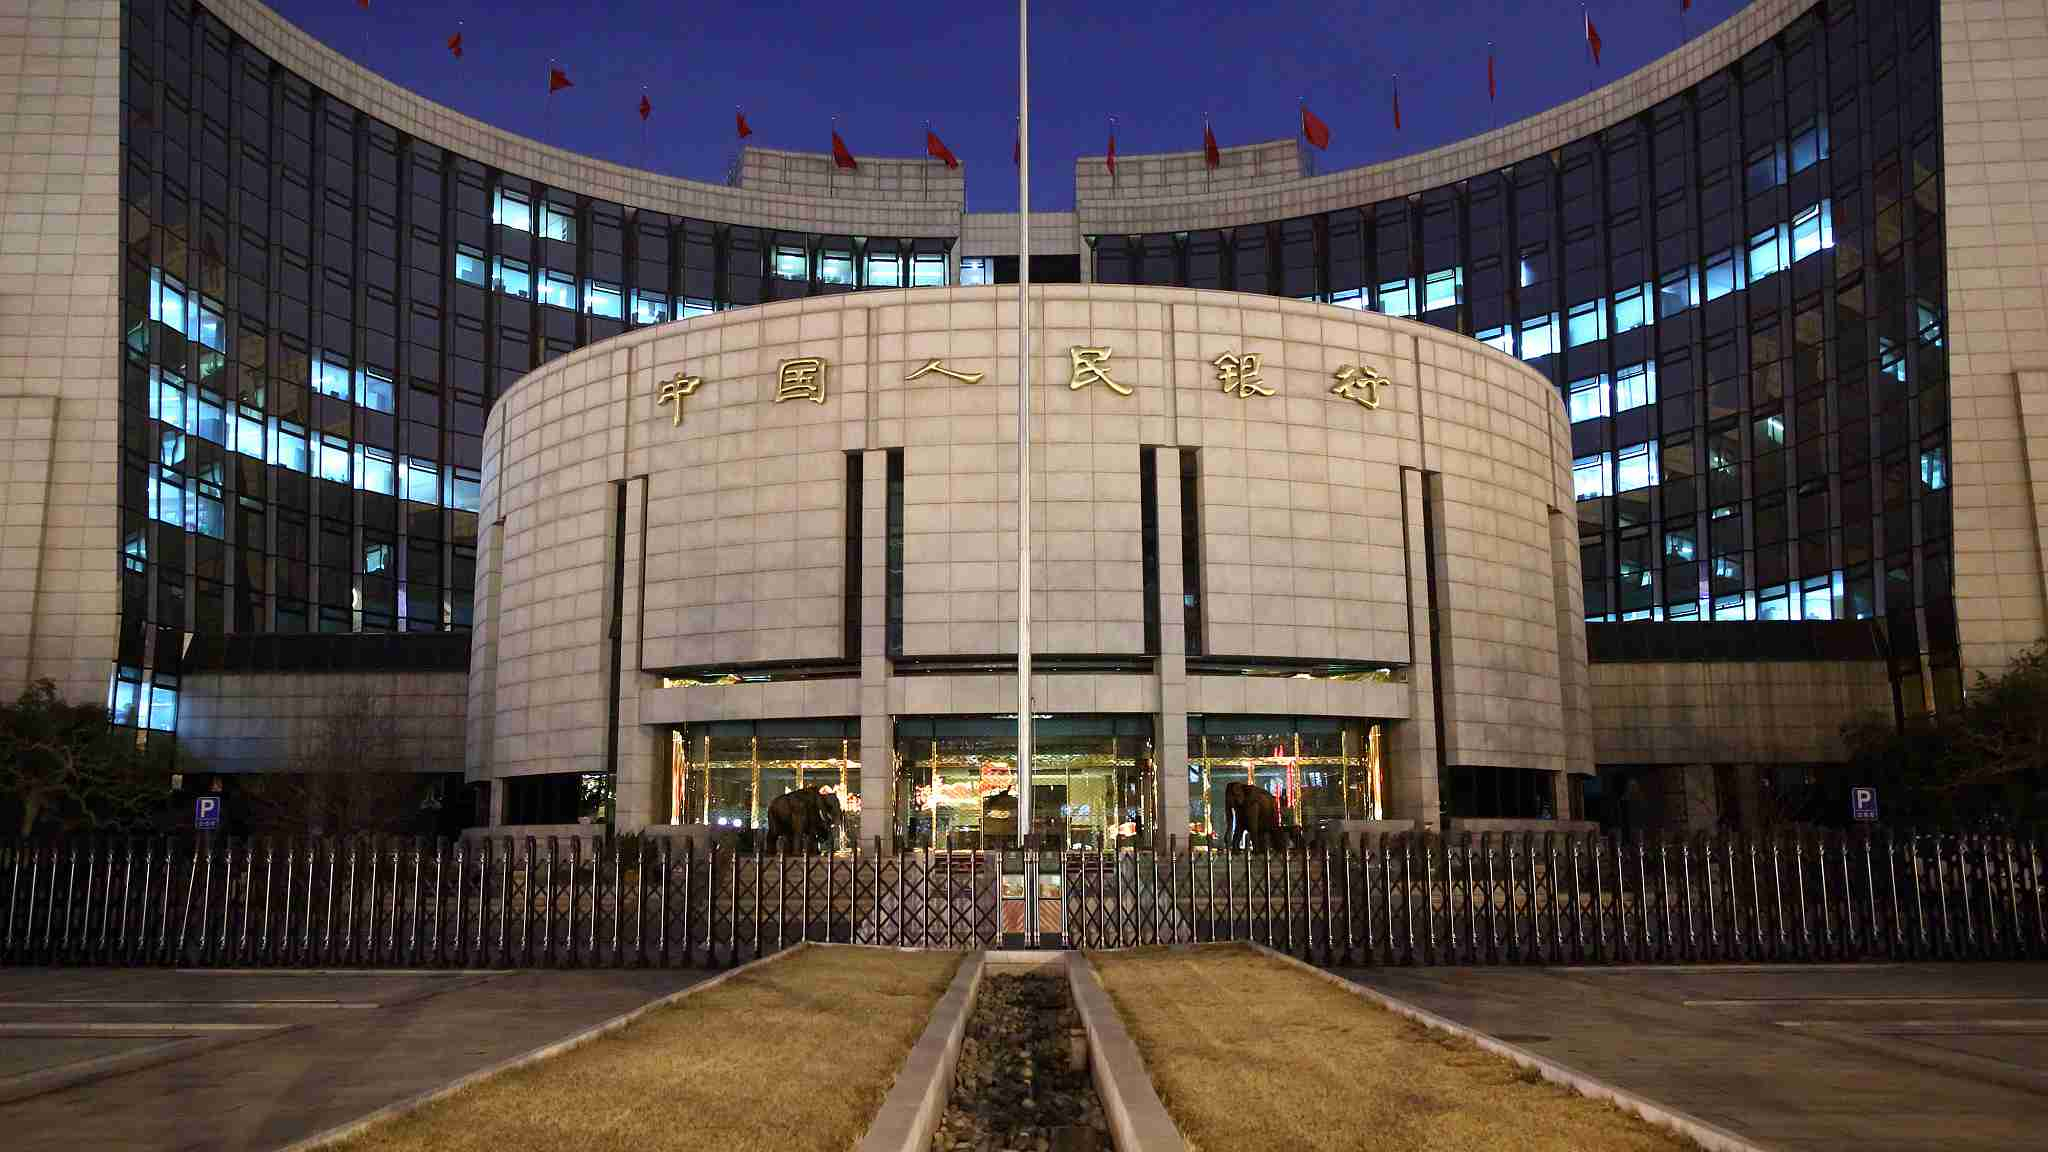 New yuan loans up 76% year-on-year in July